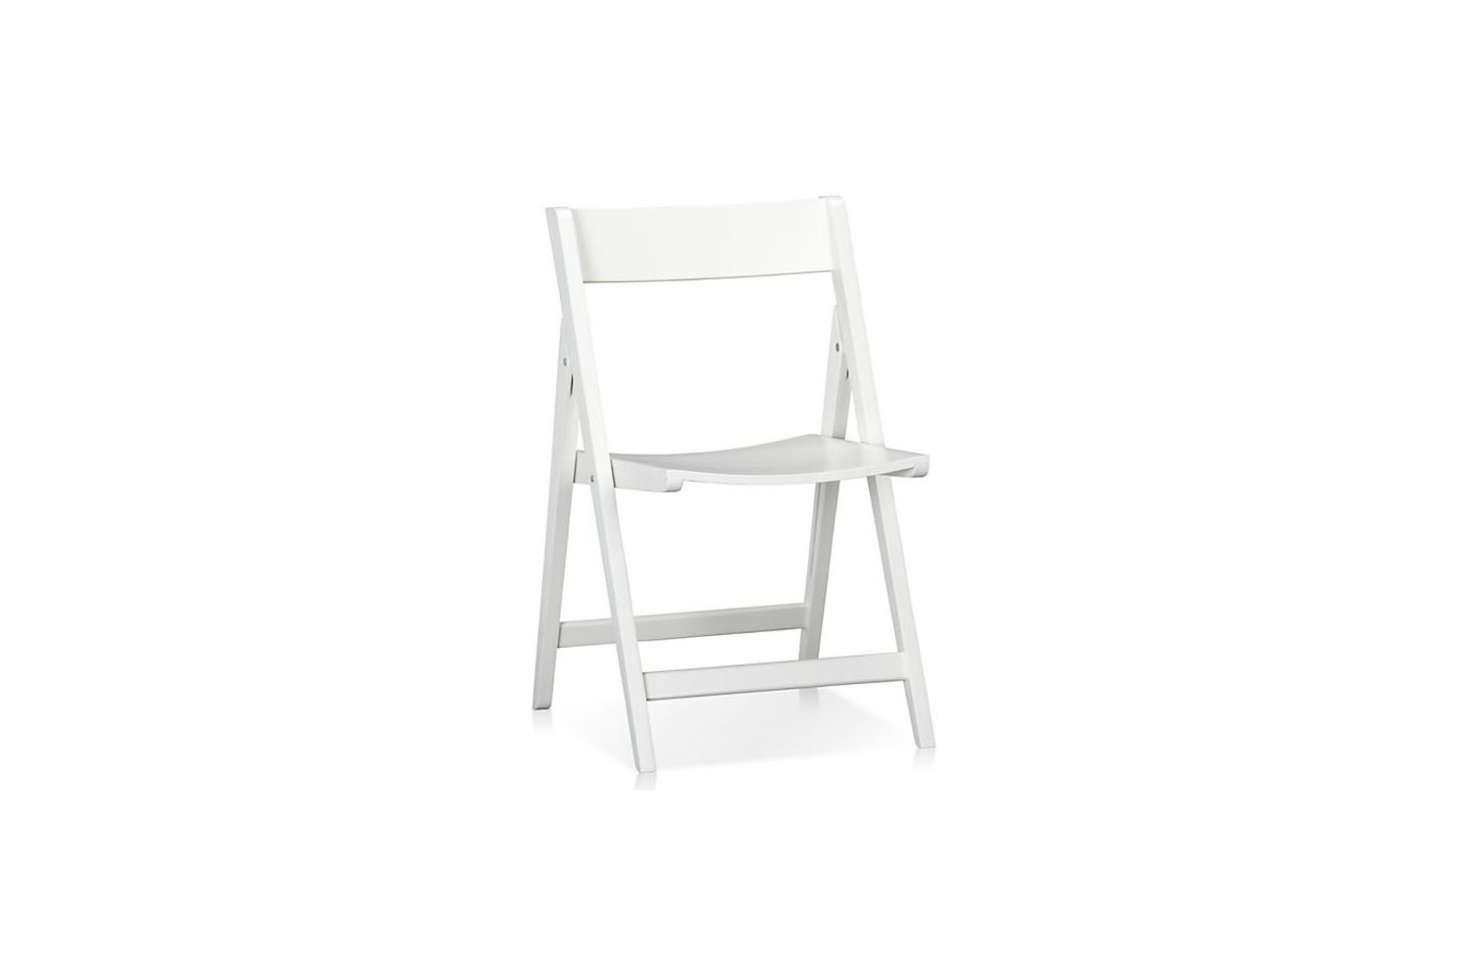 Made In Thailand, The Solid Rubberwood Spare White Folding Chair Is $49.95  From Crate U0026